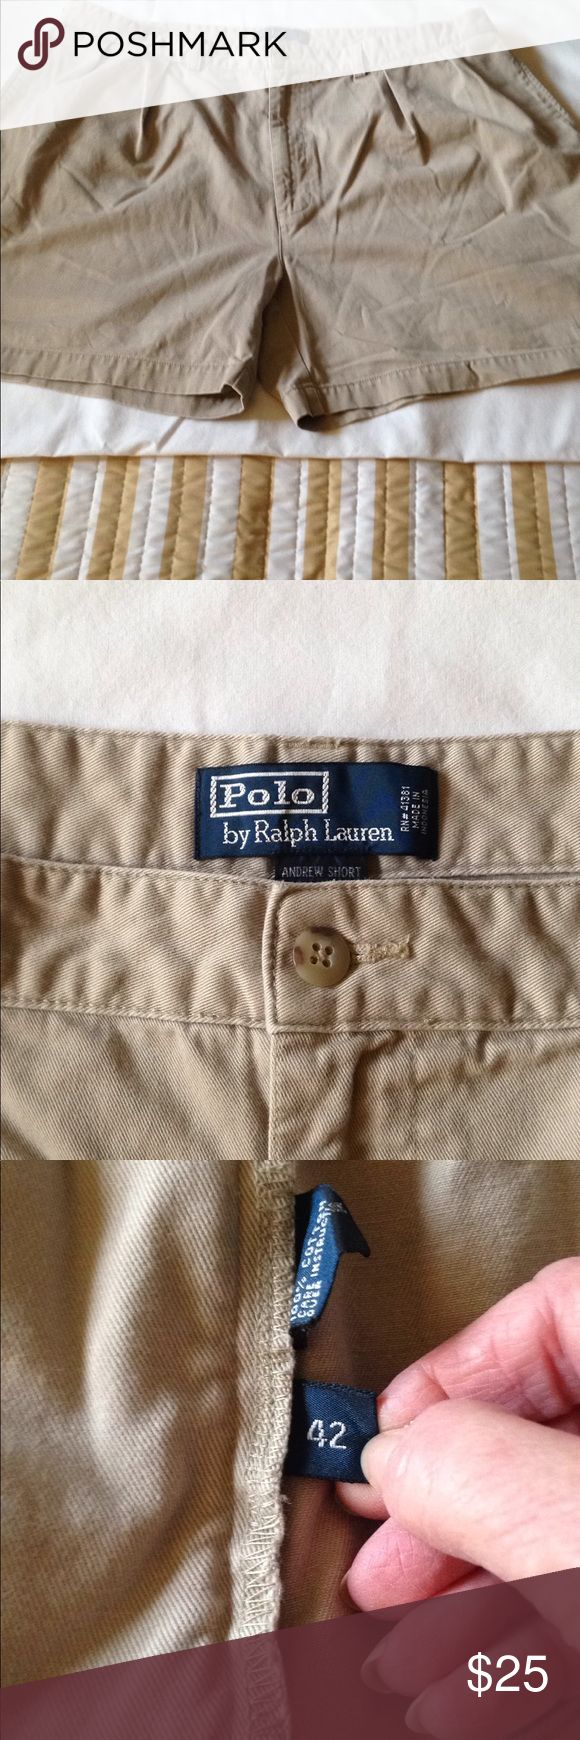 Men's Polo Classic Chino Shorts by Ralph Lauren Men's Polo khaki shorts by Ralph Lauren. Size 42. Polo by Ralph Lauren Shorts